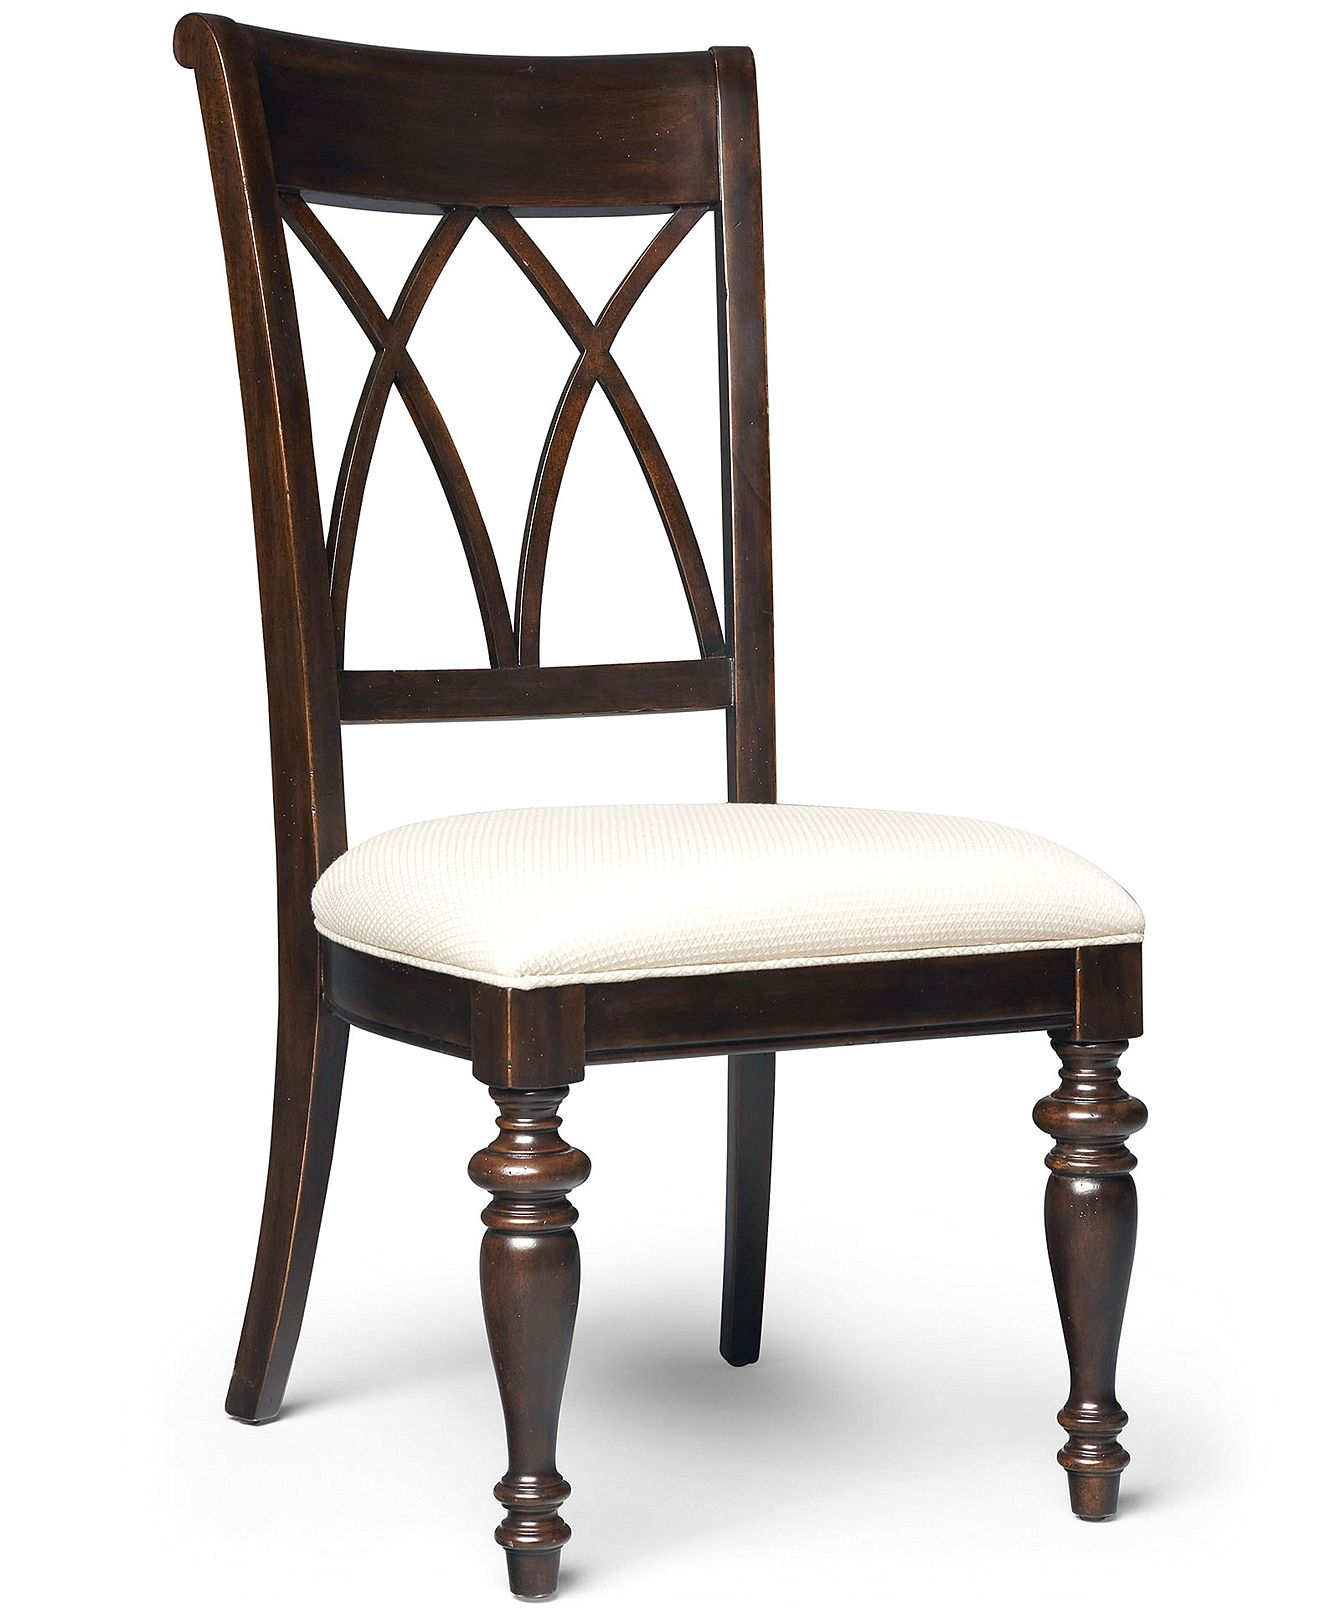 Macys Leather Dining Chair Bradford Dining Chair Cross Back Side Chair Dining Room Furniture